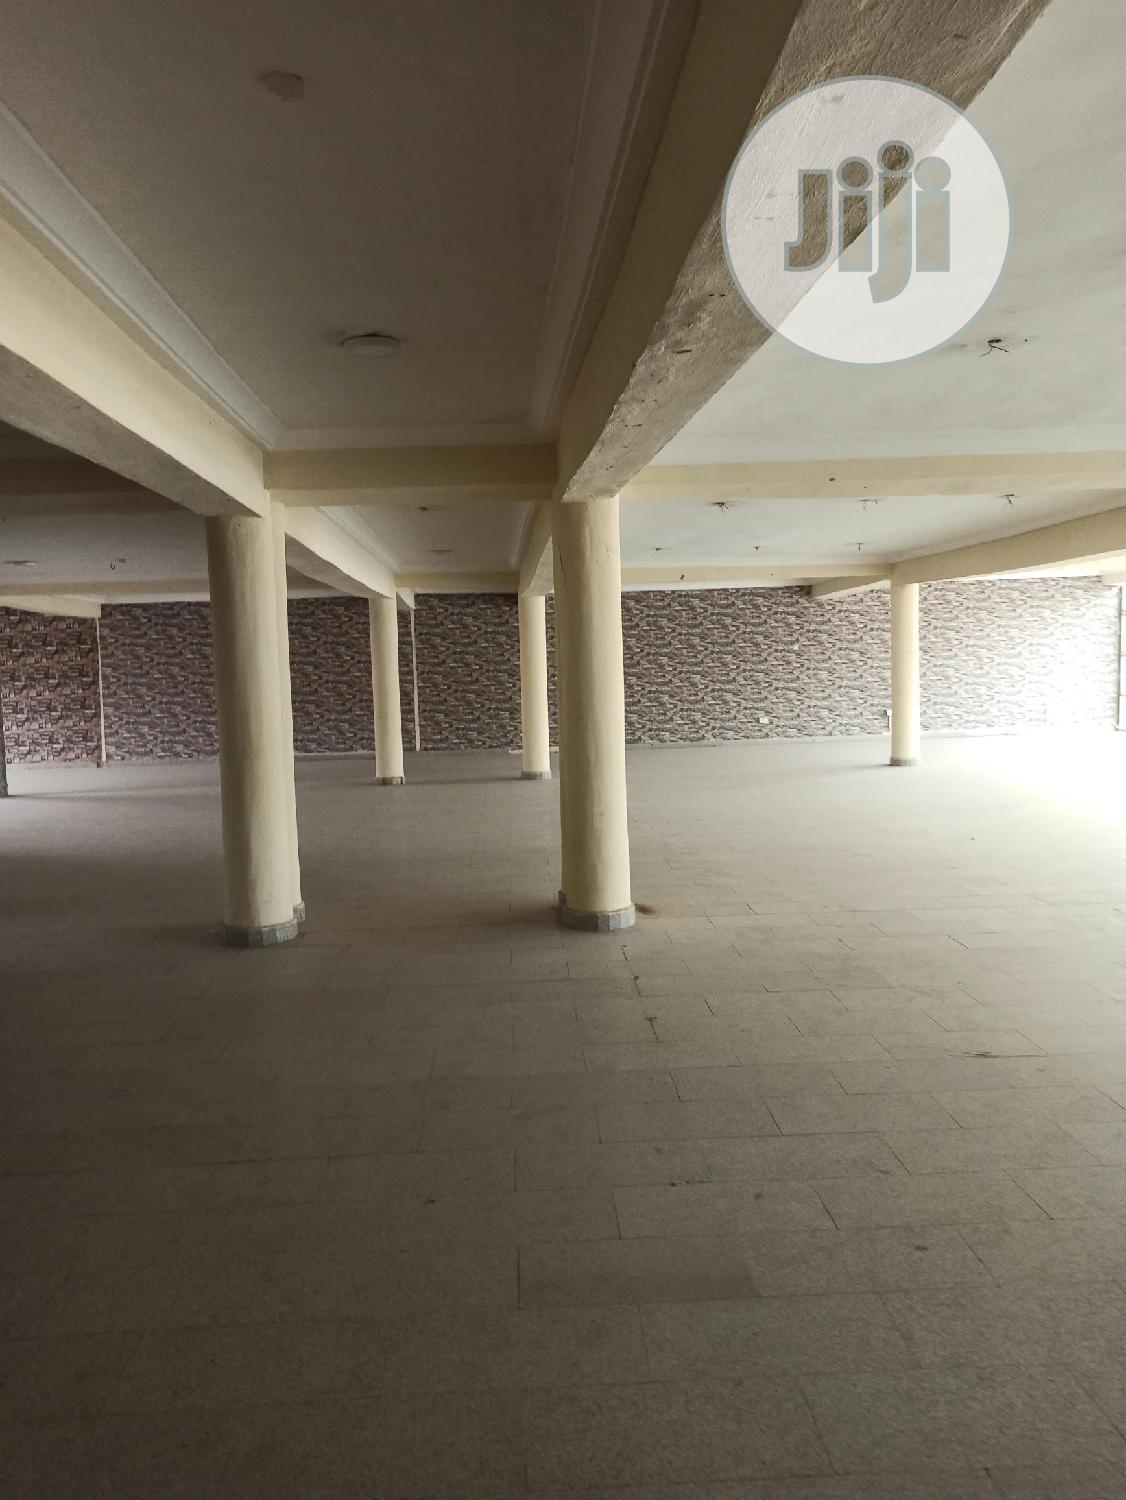 500sqm Space/ Hall for Rent in Wuse2   Event centres, Venues and Workstations for sale in Wuse 2, Abuja (FCT) State, Nigeria